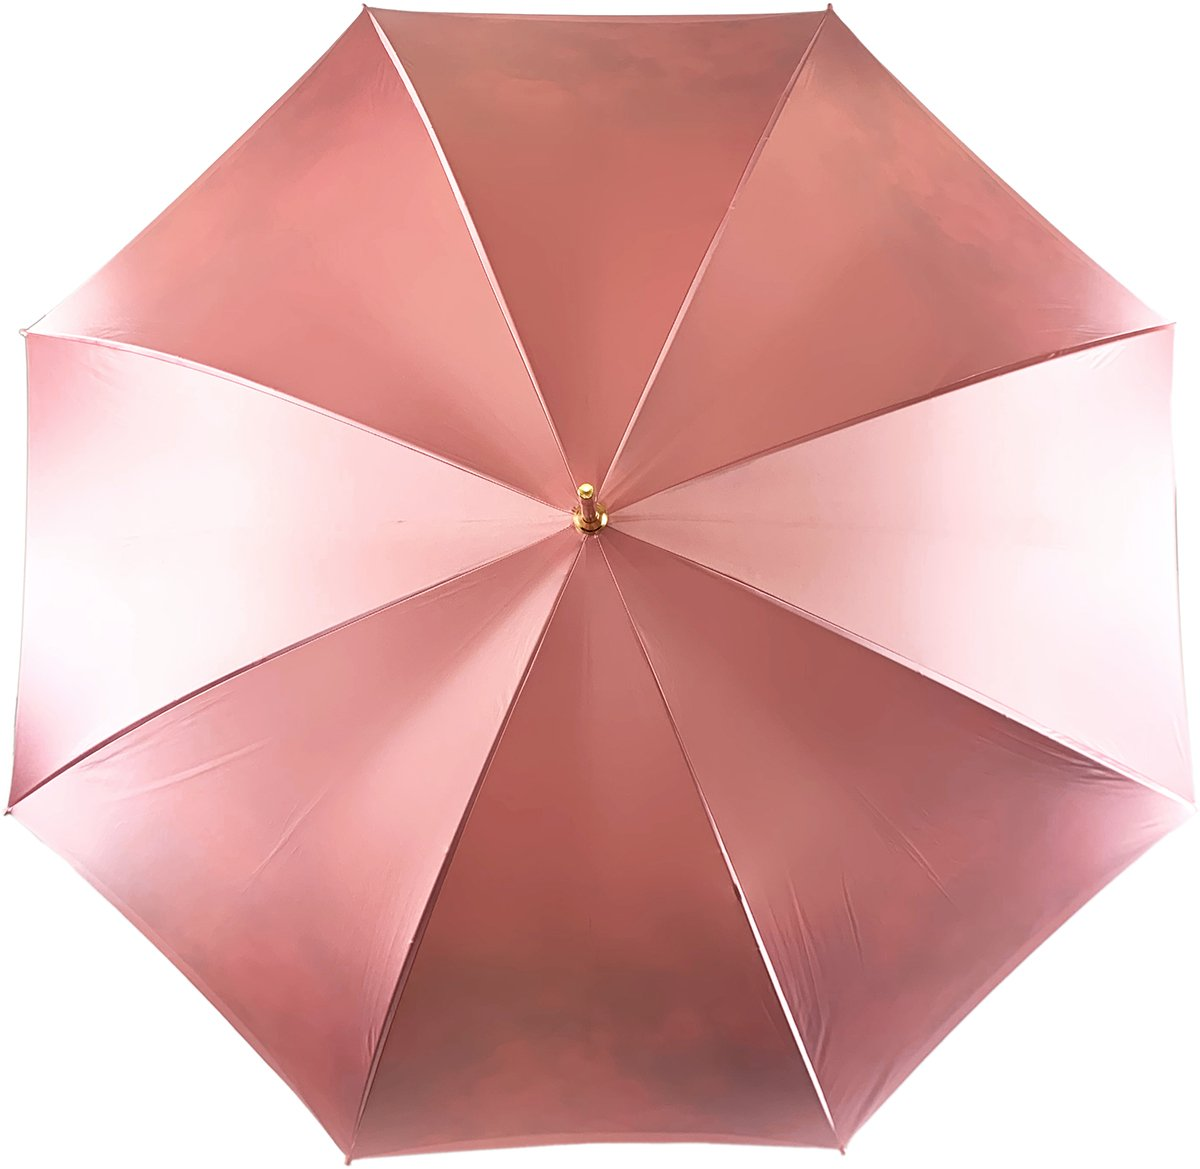 Beautiful Double Canopy Umbrella in a Luxurious Pink Satin